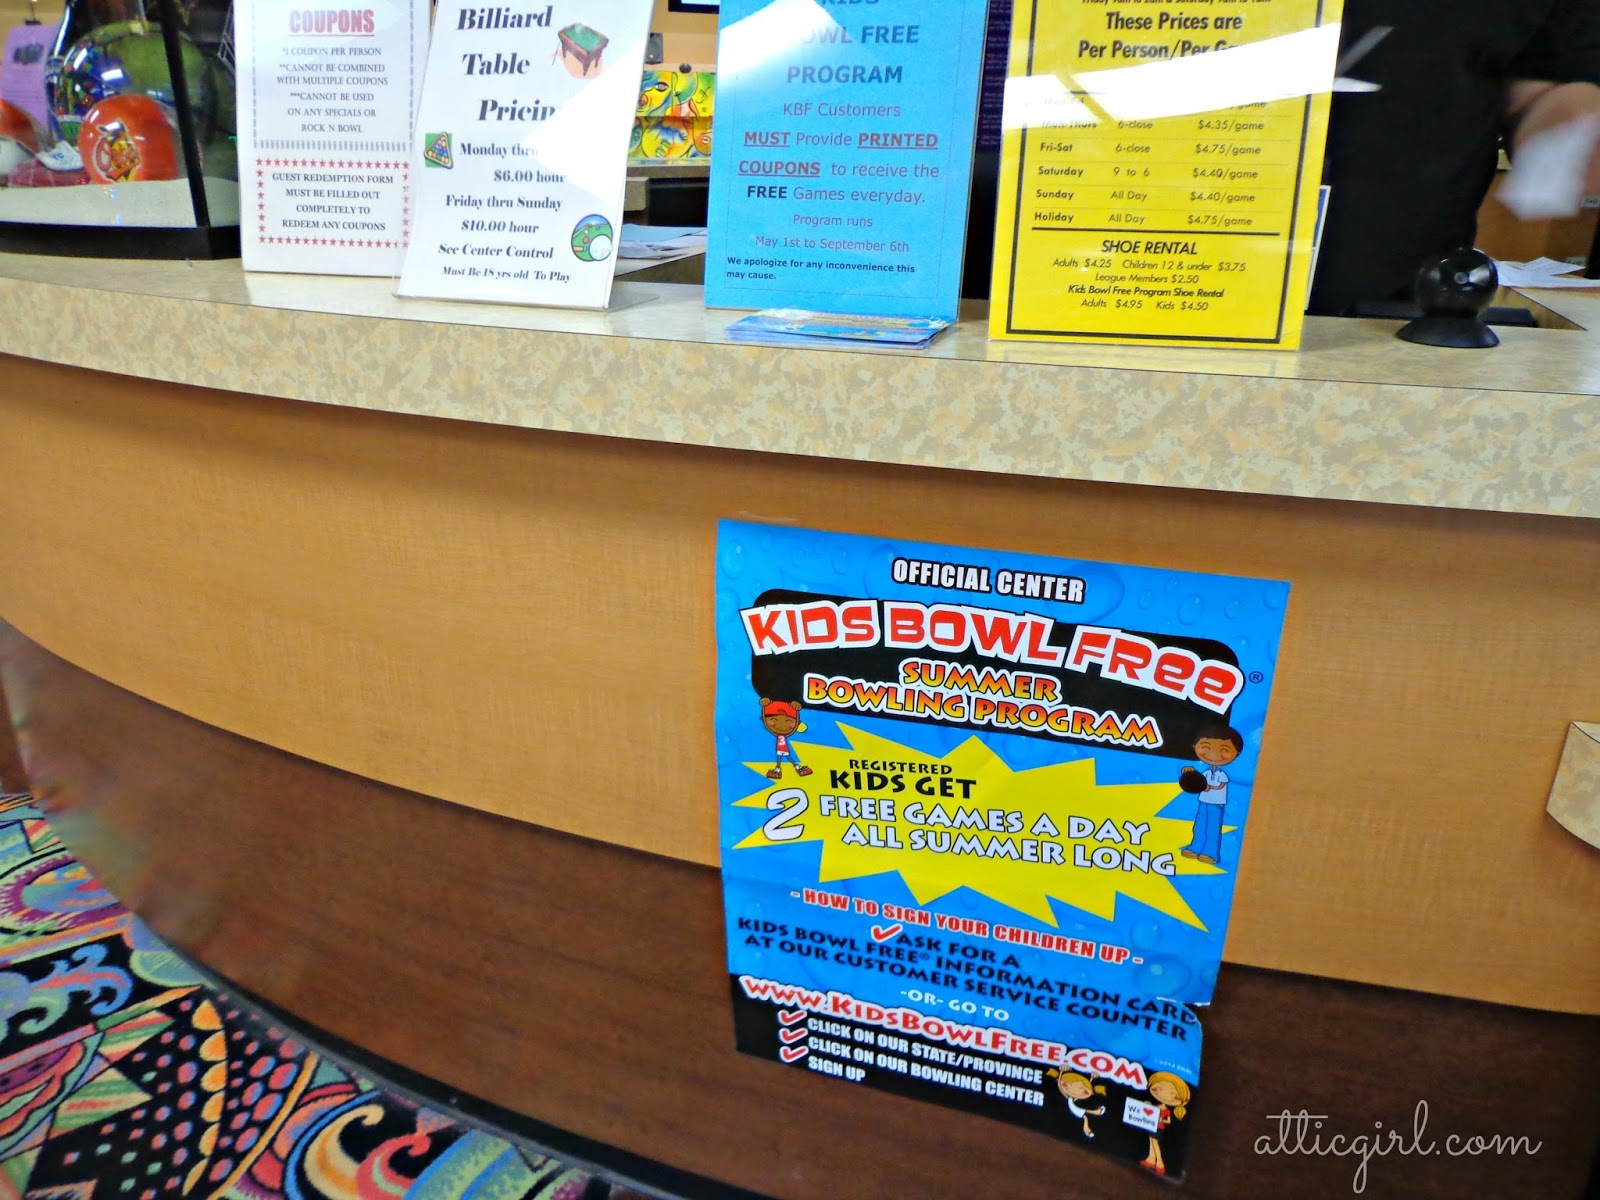 Kids Bowl Free Summer program, summer activities for kids, freebies